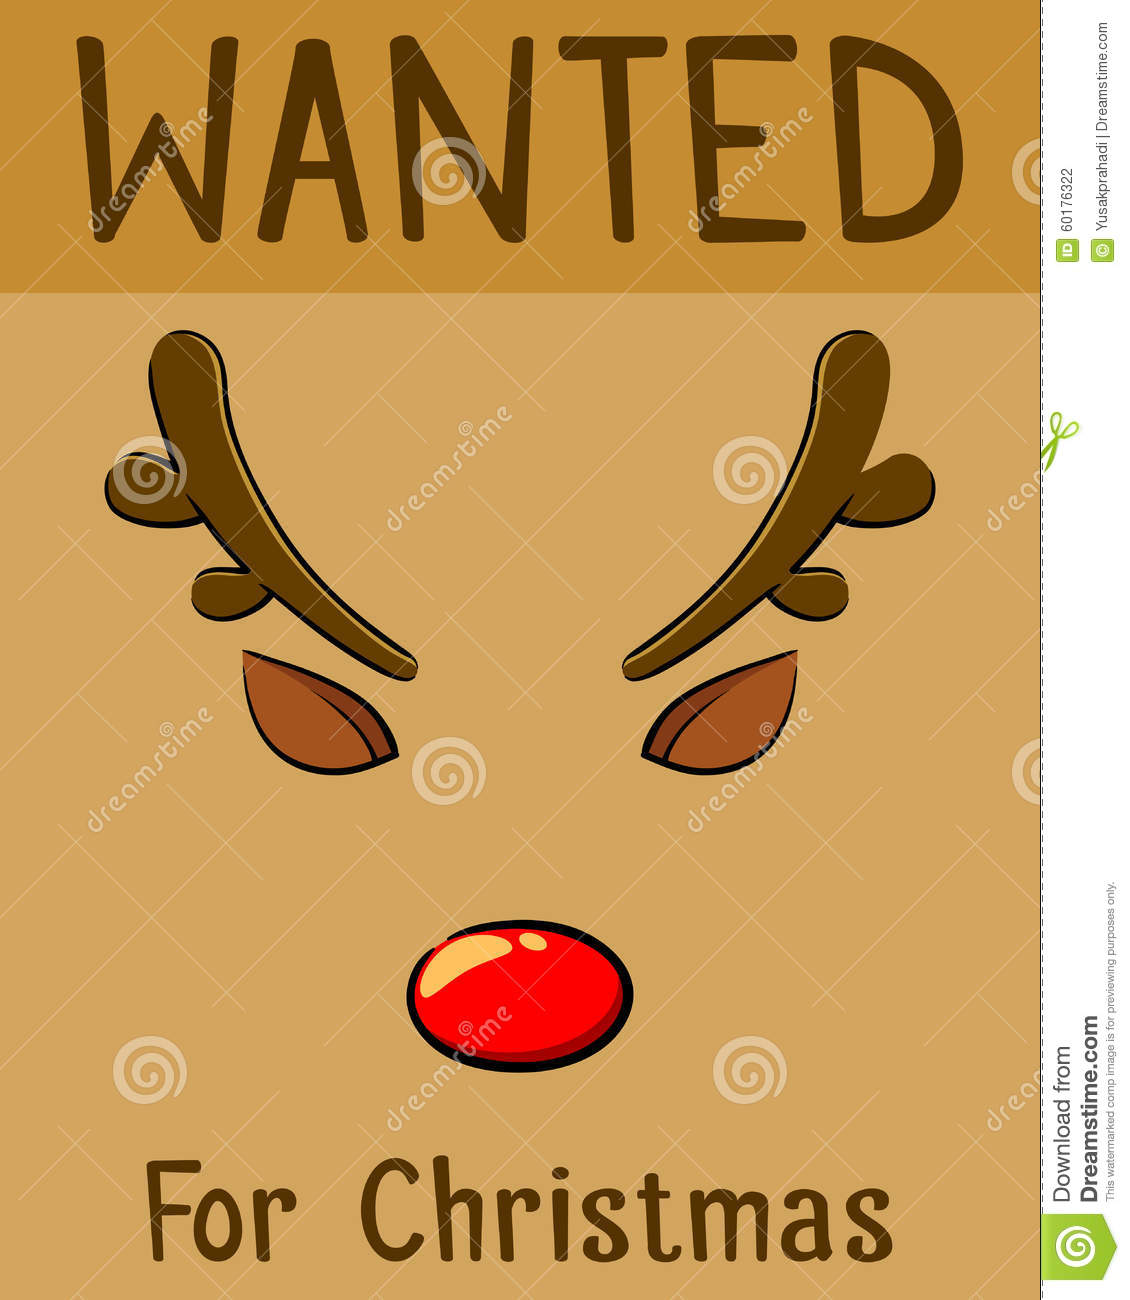 Red Nose Reindeer Wanted For Christmas Poster Stock Vector - Image ...